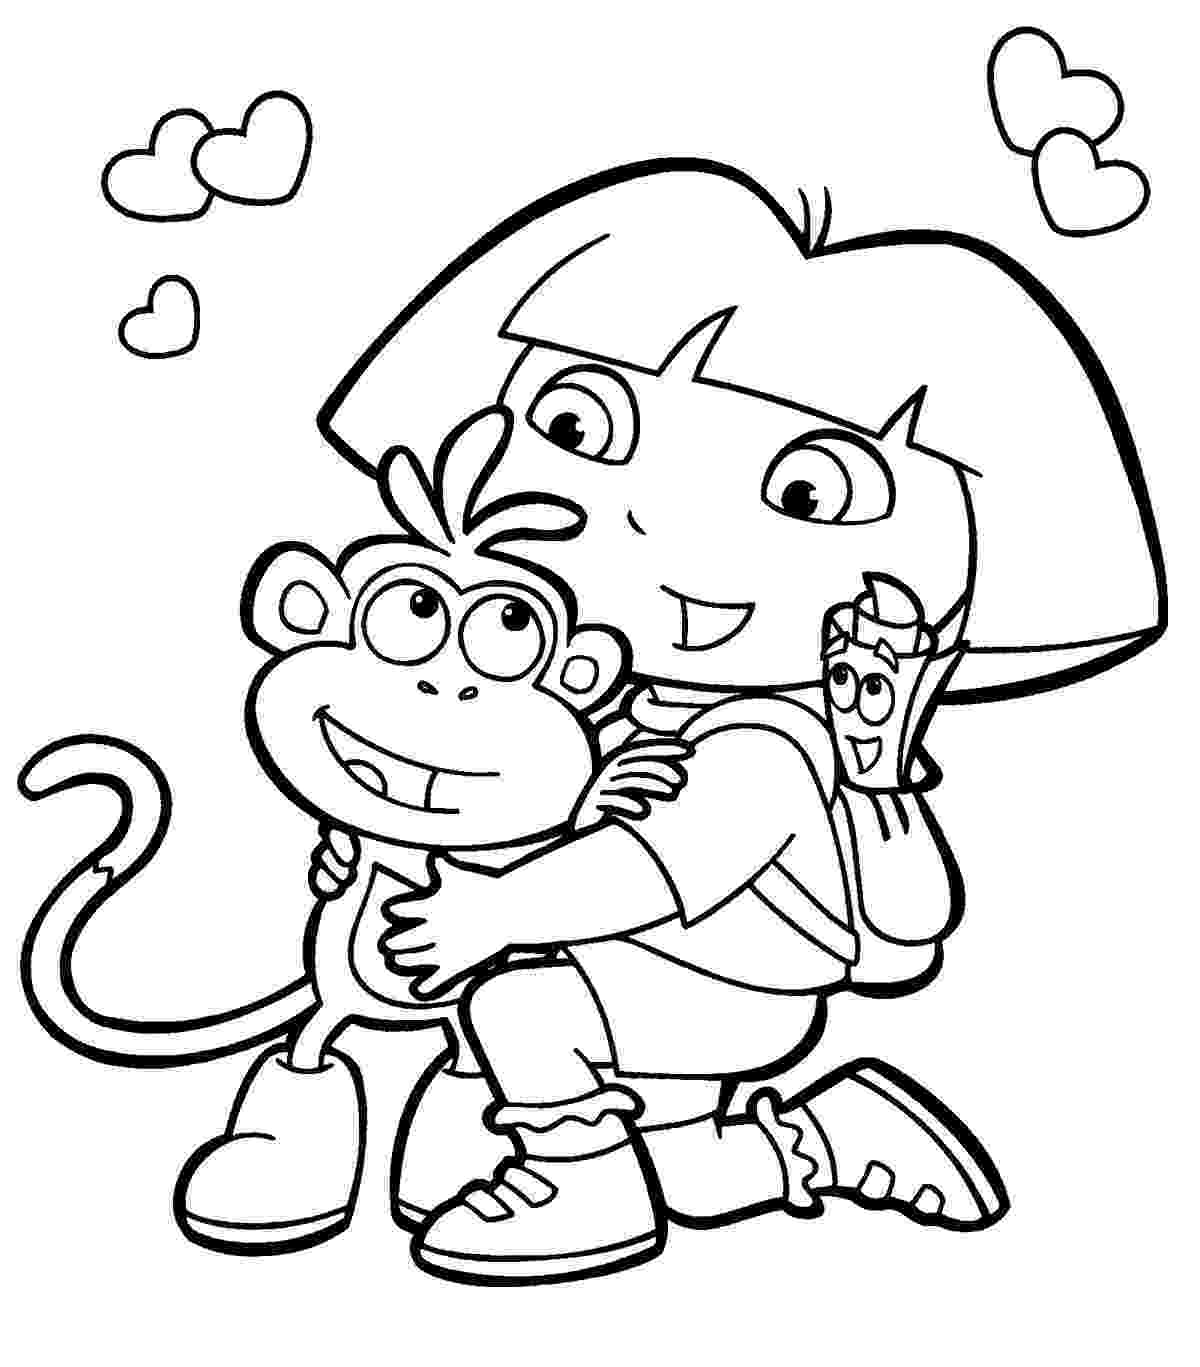 dora painting pictures dora coloring page free printable coloring pages pictures painting dora